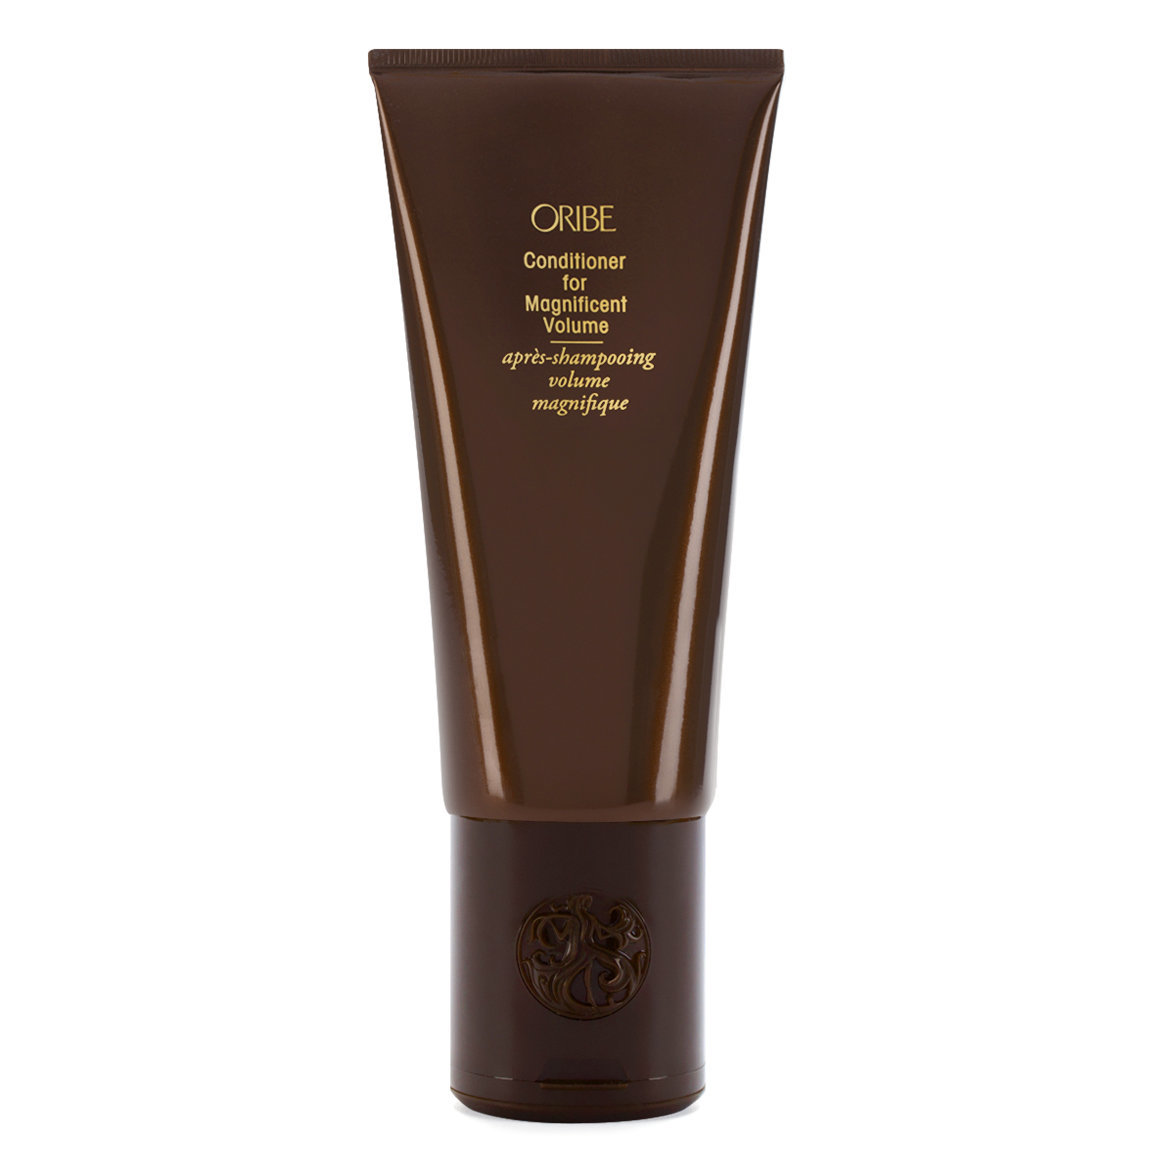 Oribe Conditioner for Magnificent Volume product smear.